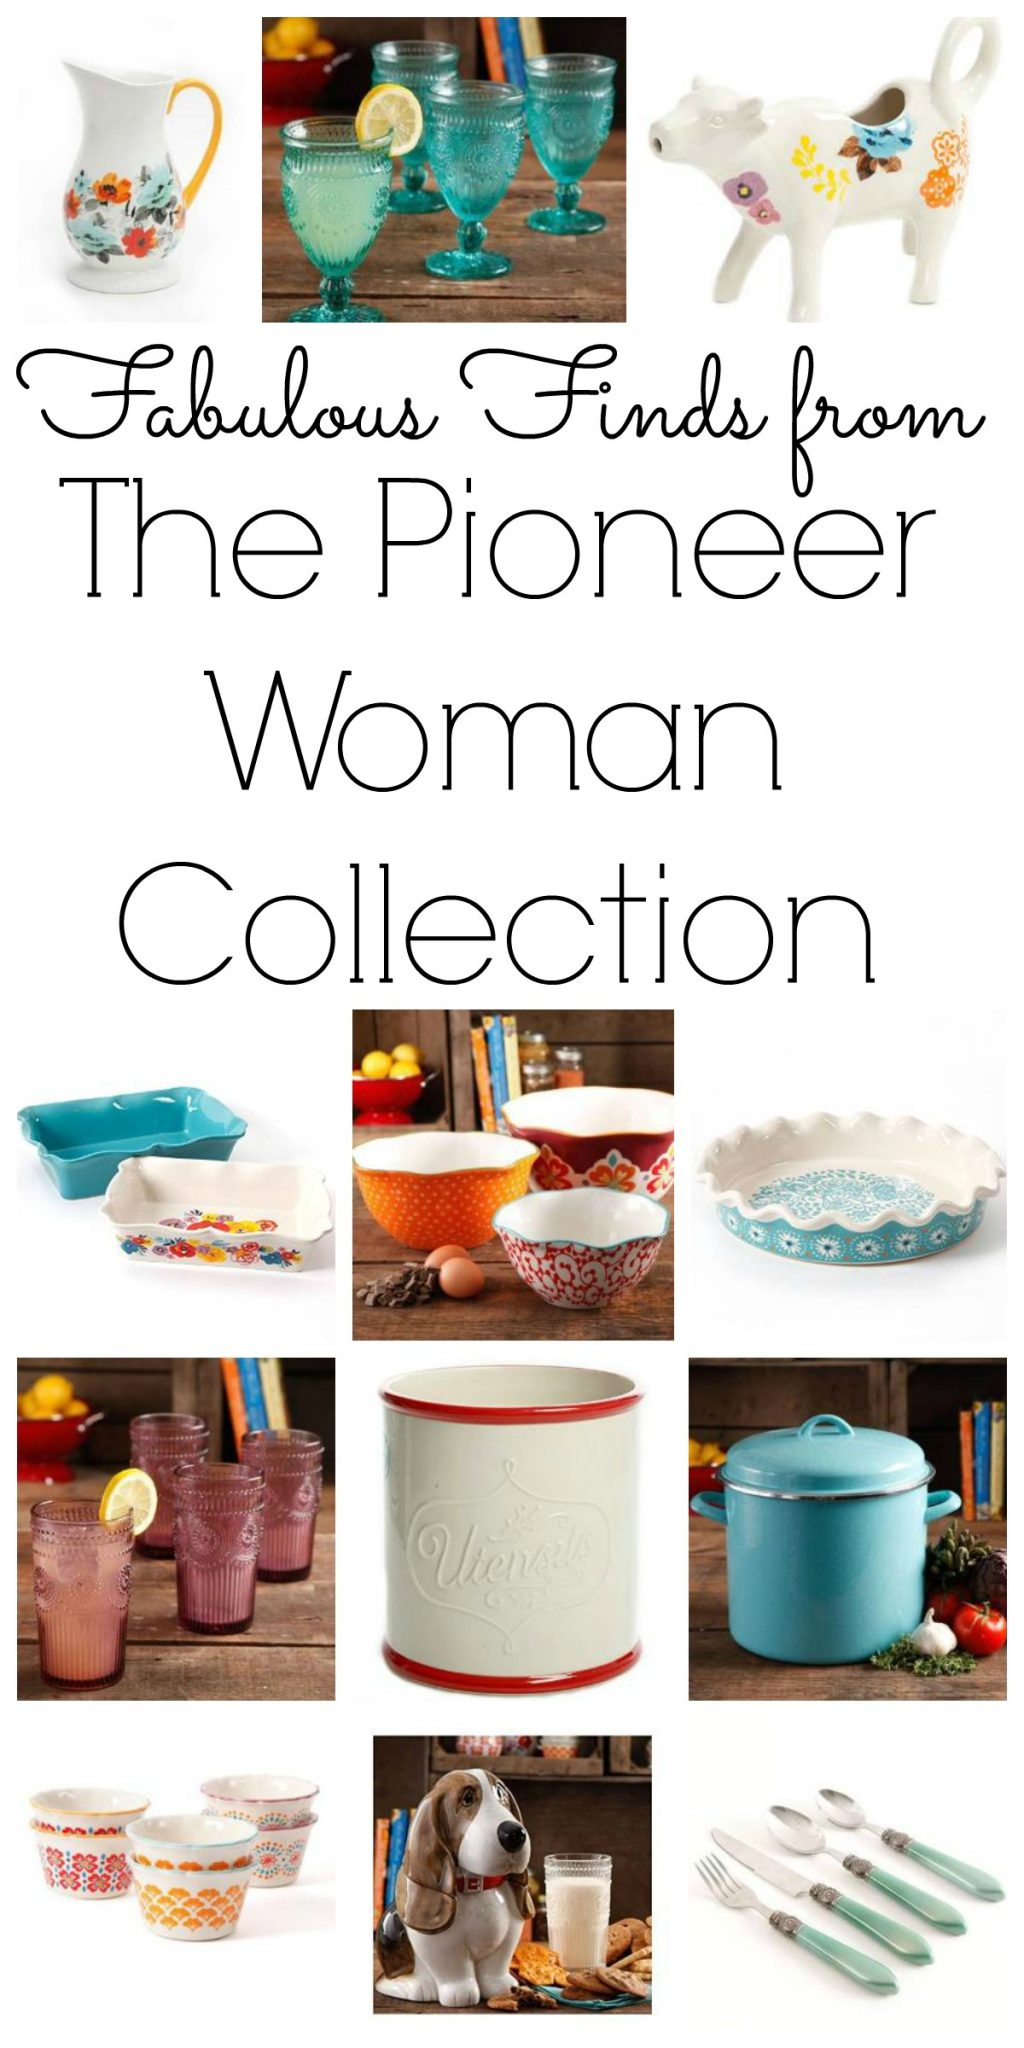 pick up these pioneer woman kitchen essentials from her product line i love this line - Pioneer Woman Kitchen